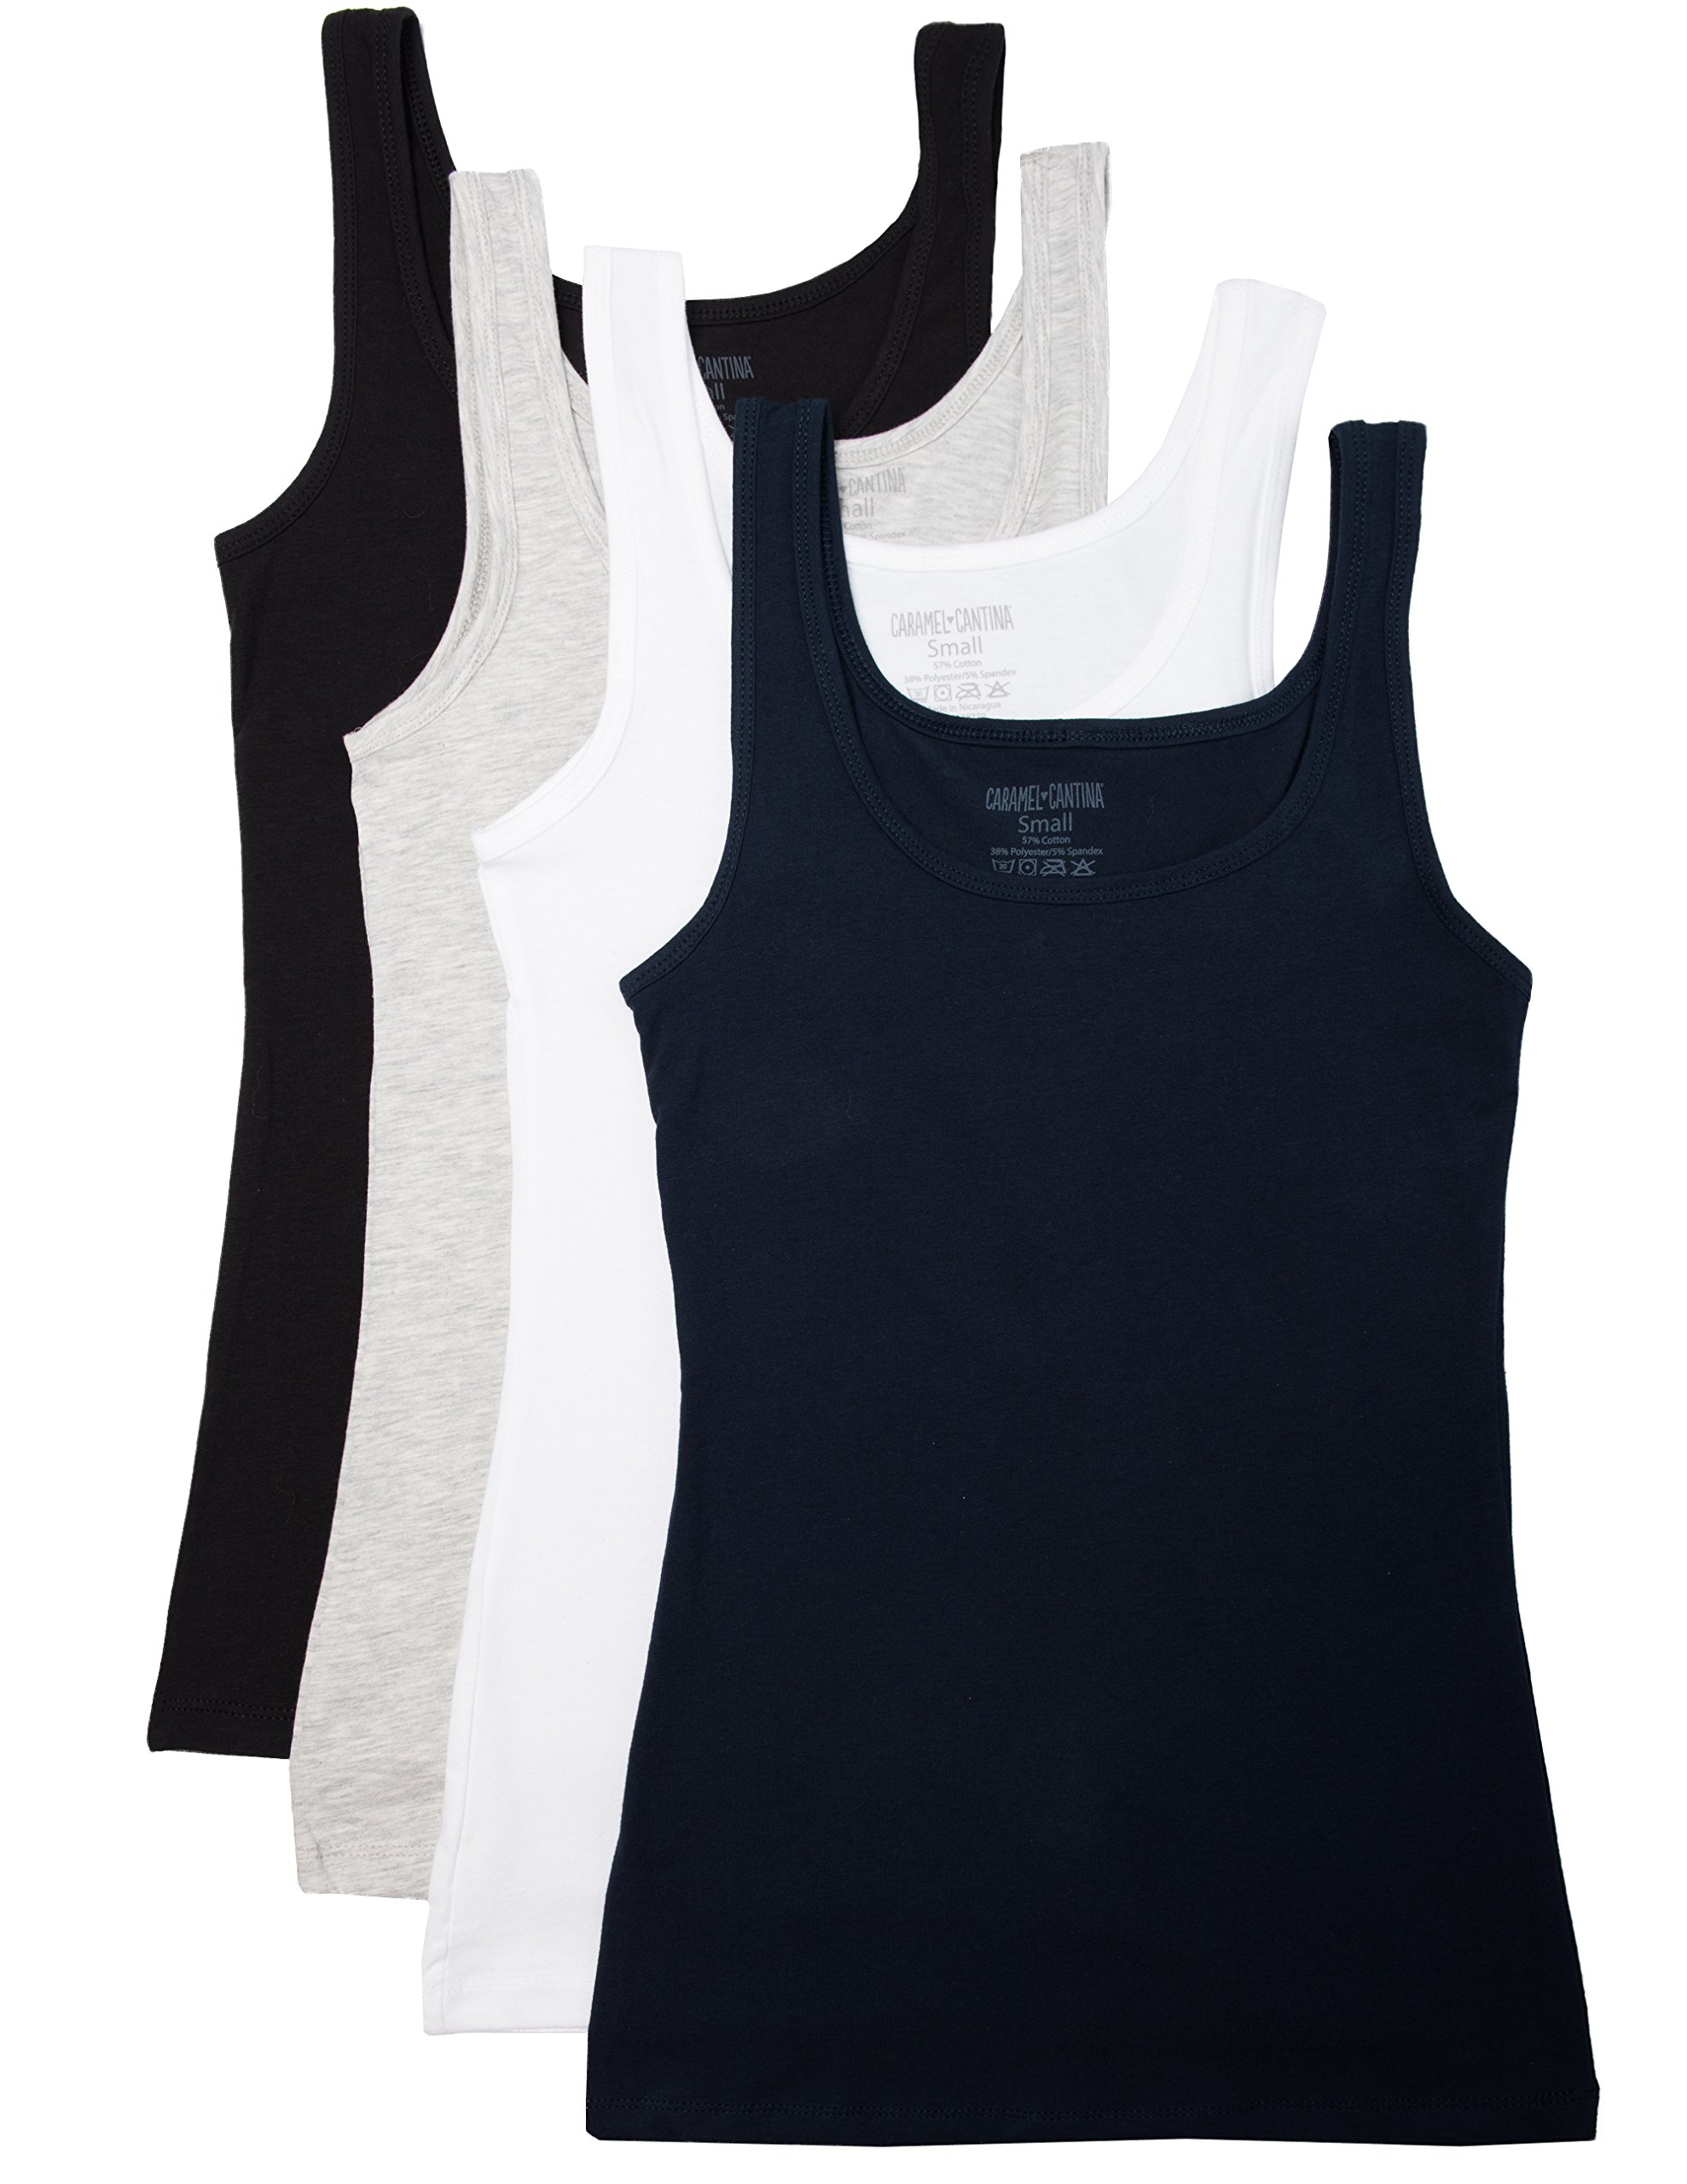 Caramel Cantina 4 Pack Junior's Skinny Tank Top (Medium, Black/White/Navy/Grey)